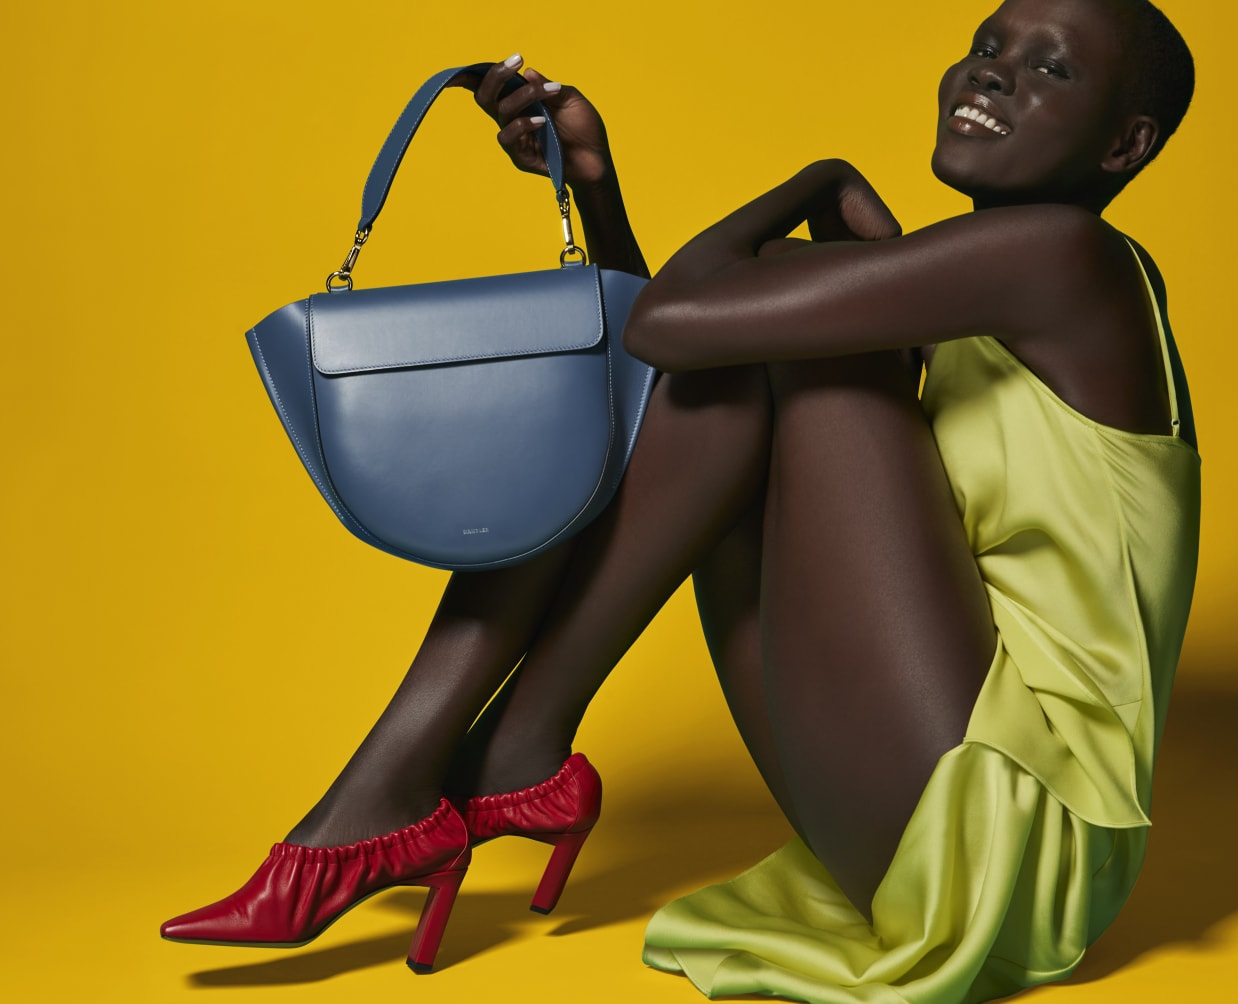 RED SQUNCH SQUARE-TOE block heel sandal|MARINE BLUE HORTENSIA BAG